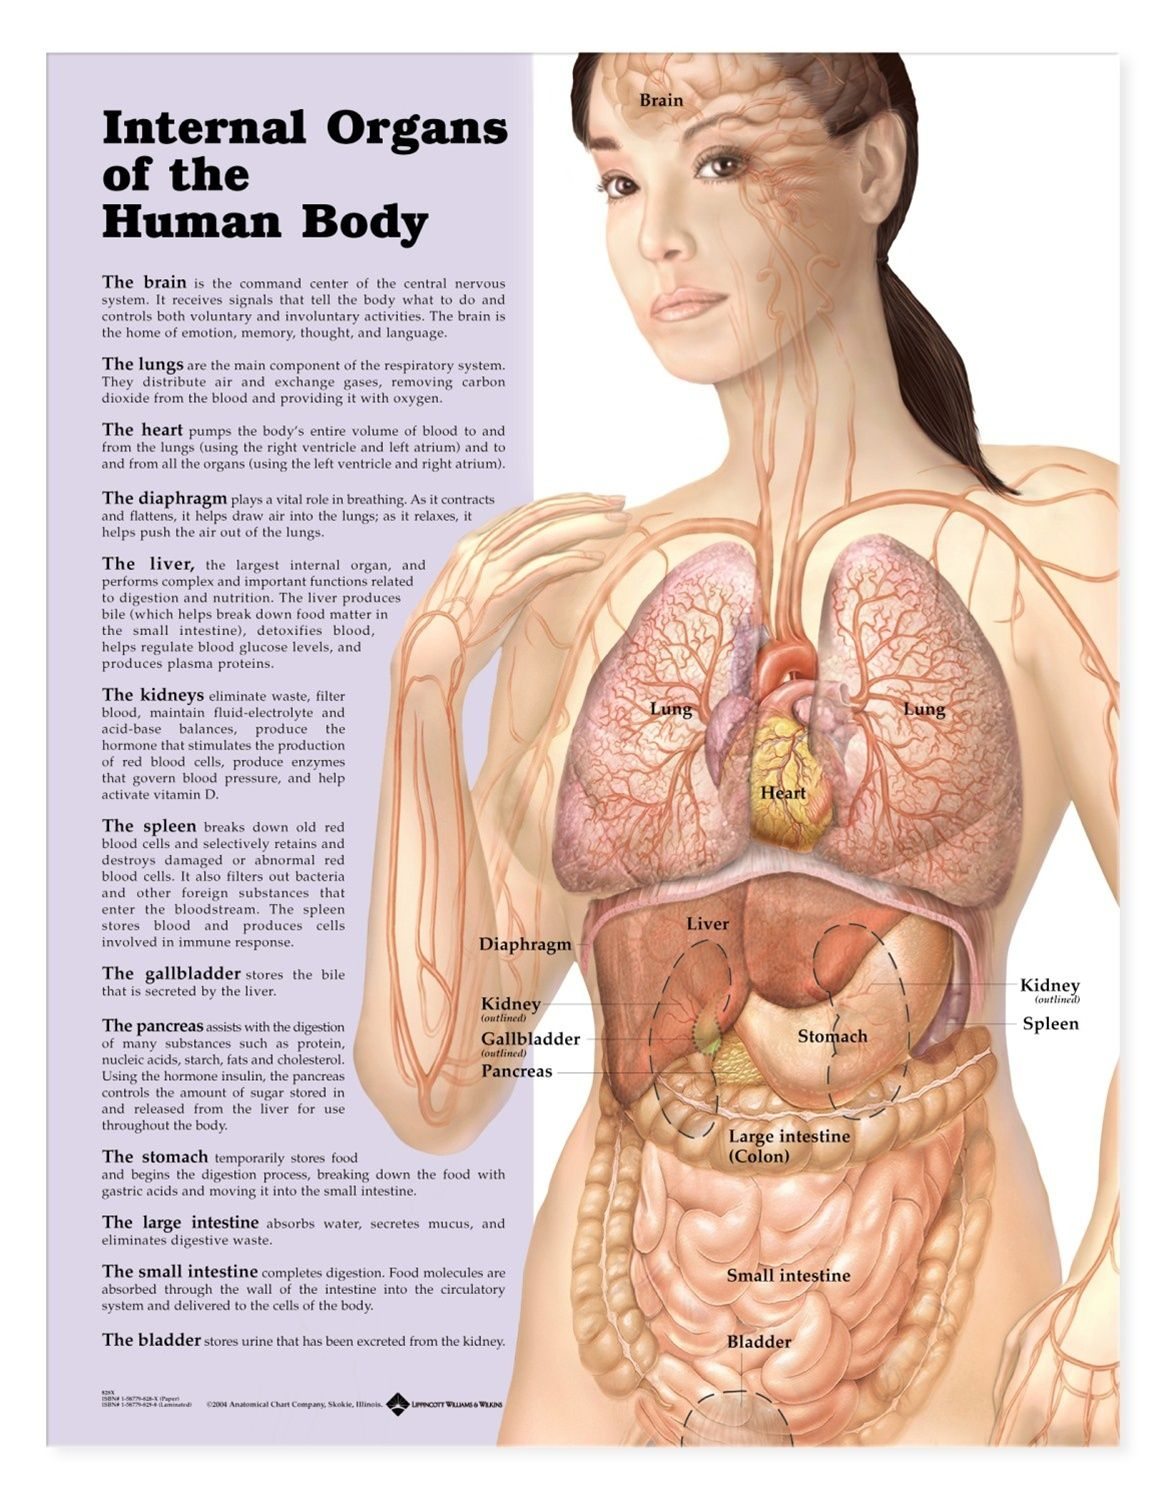 Female human body diagram of organs see more about female human female human body diagram of organs see more about female human body diagram of organs female human body and organs female human body diagram o pooptronica Image collections